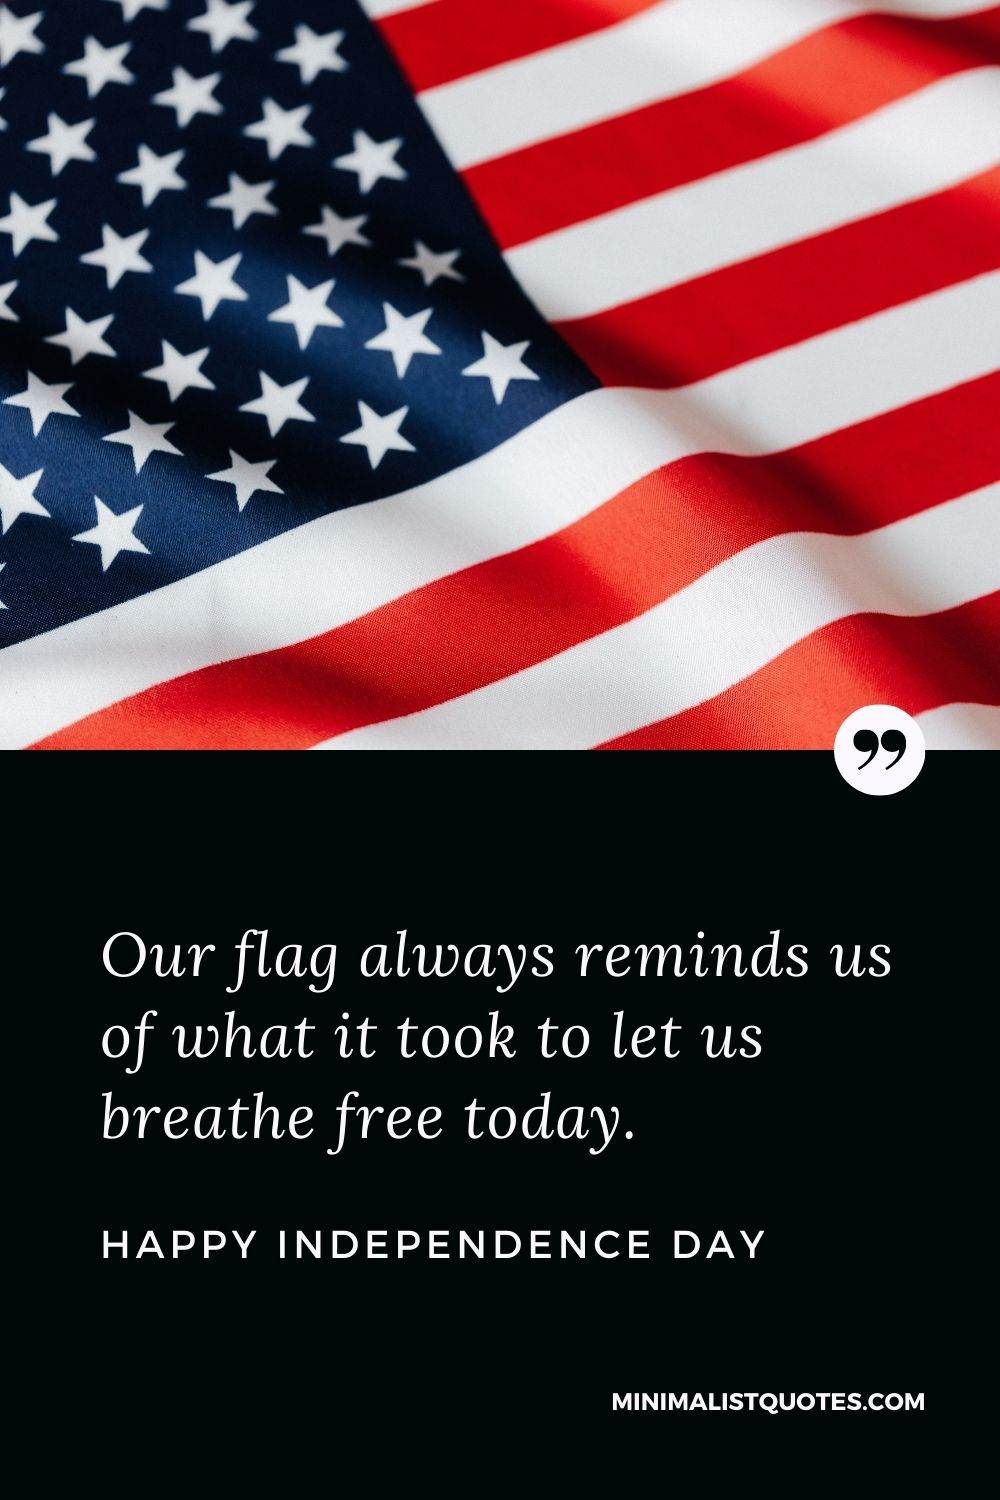 Independence Day Wishes Quotes with Images: Our flag will always remind me of what it took to let me breathe free today. Happy Independence Day!